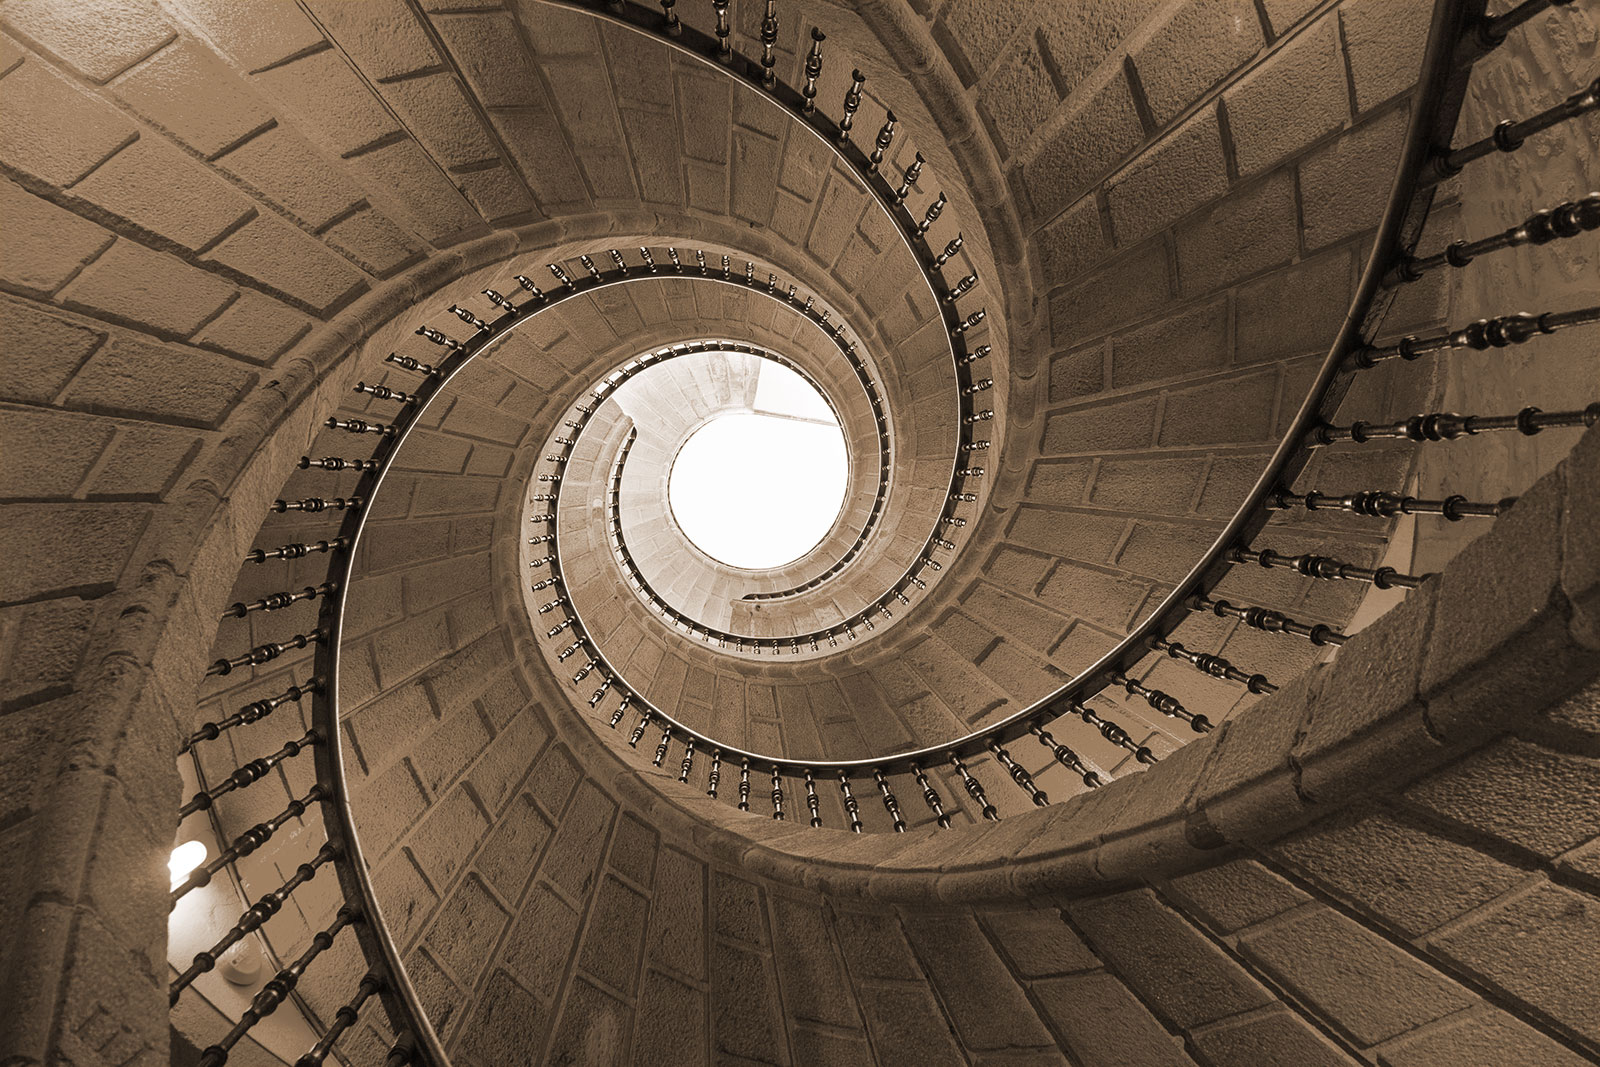 Leadership Development – Spiral staircase, seen from below